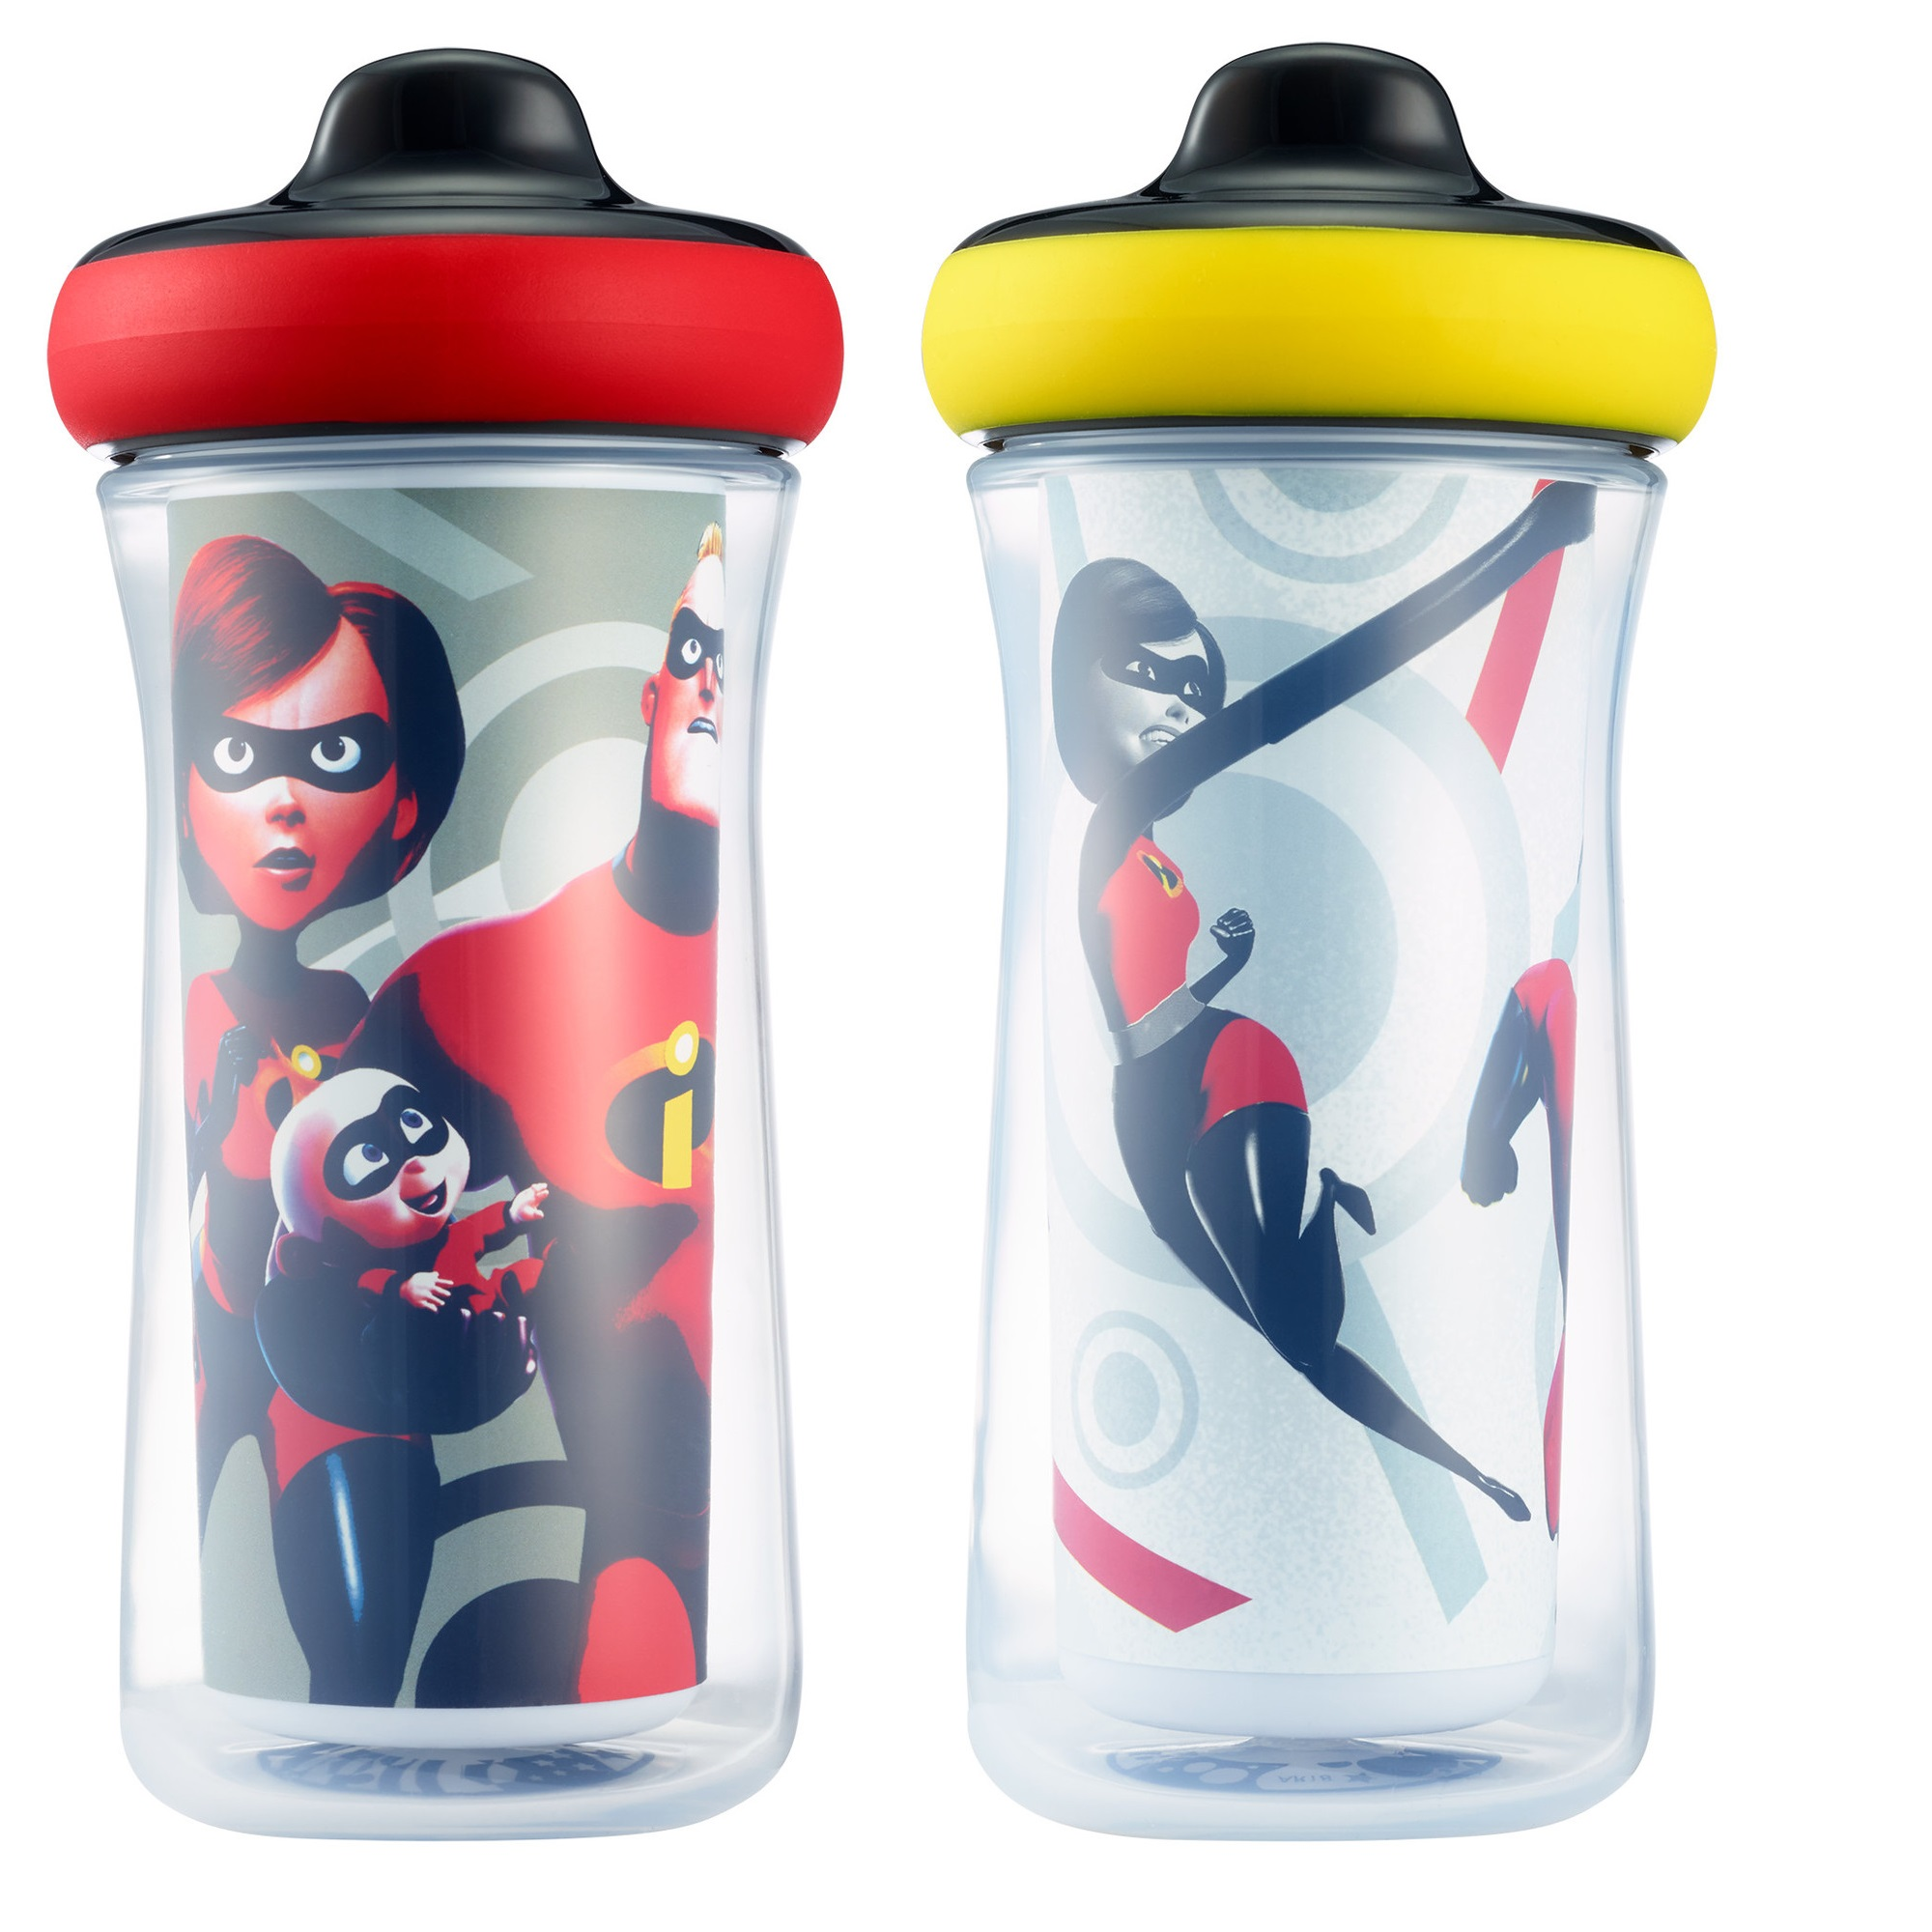 Disney/Pixar Incredibles Insulated Hard Spout Sippy Cups, 9 Oz, 2 Pack